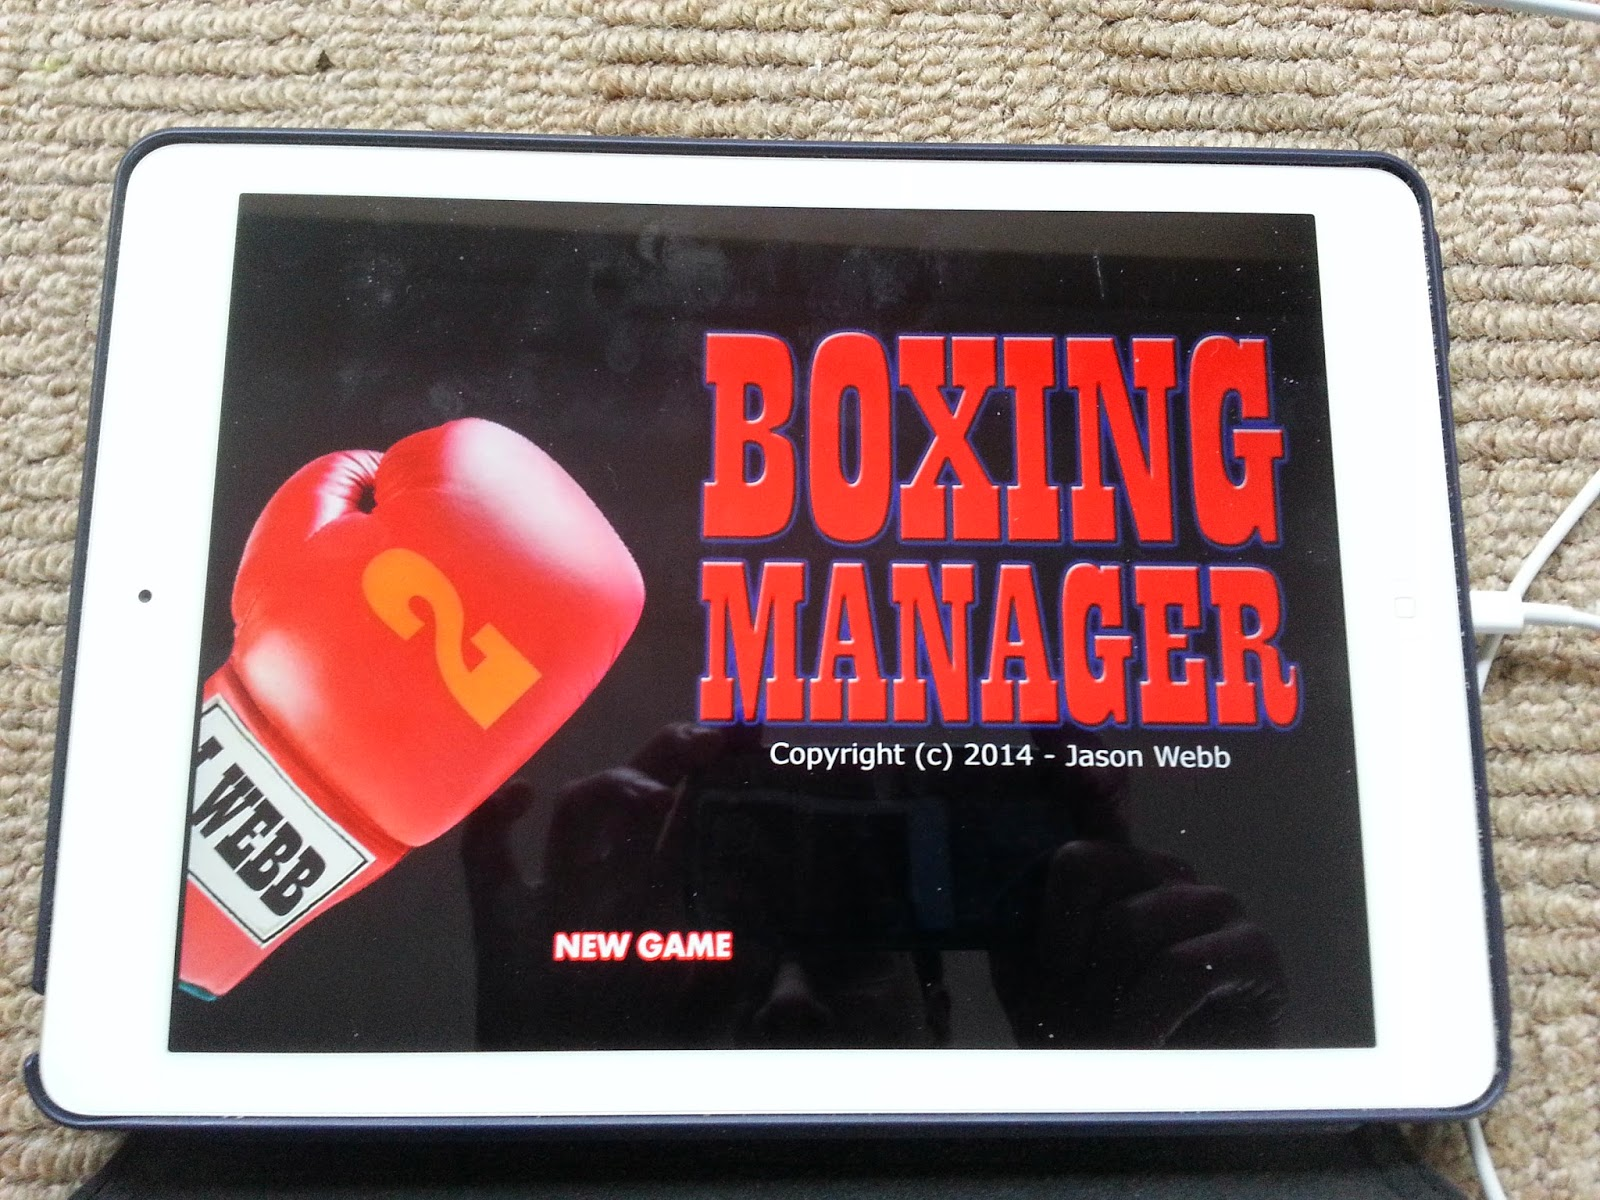 Boxing Manager Game for iOS - iPhone and iPad - coming soon!